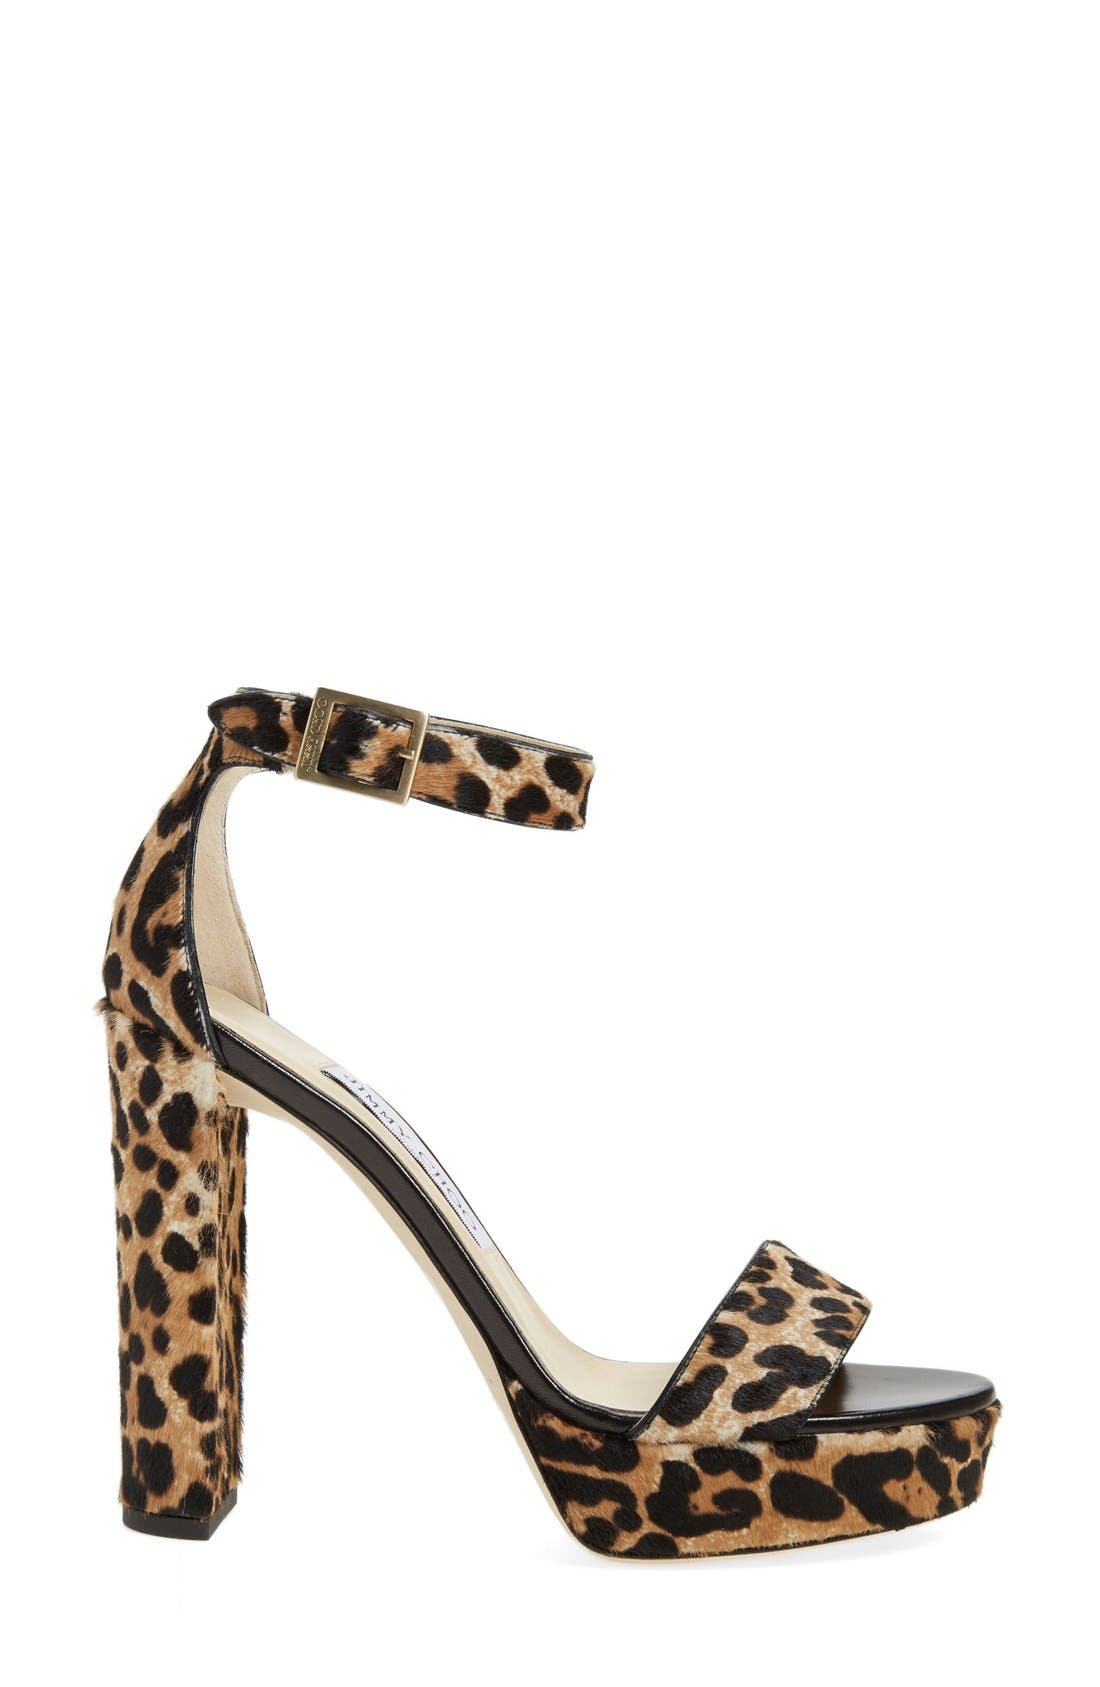 JIMMY CHOO, 'Holly' Ankle Strap Sandal, Alternate thumbnail 2, color, 200